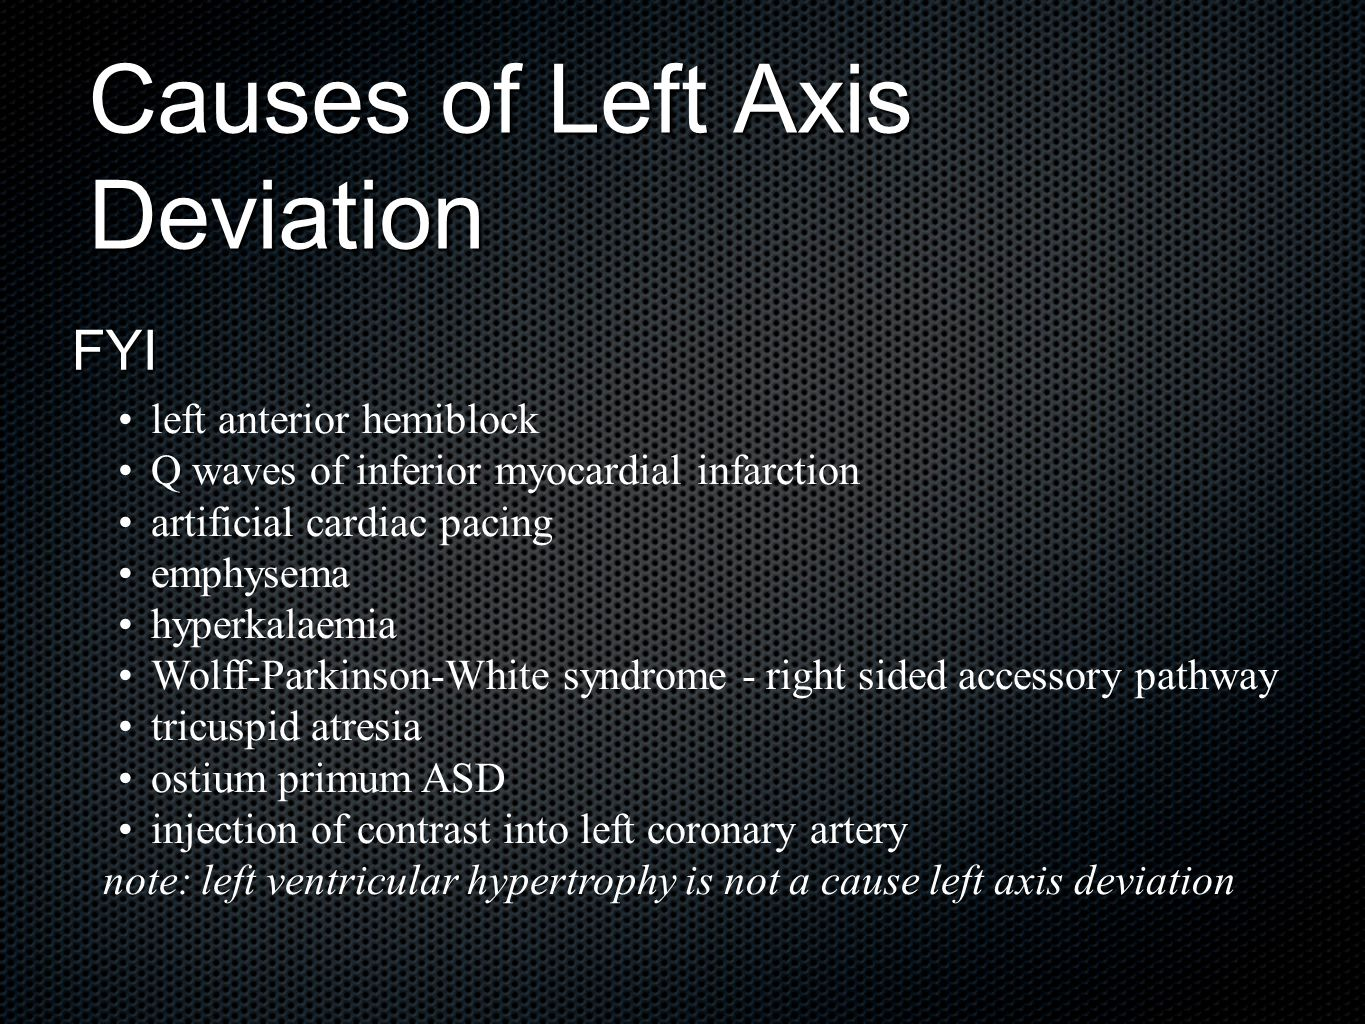 Causes of Left Axis Deviation